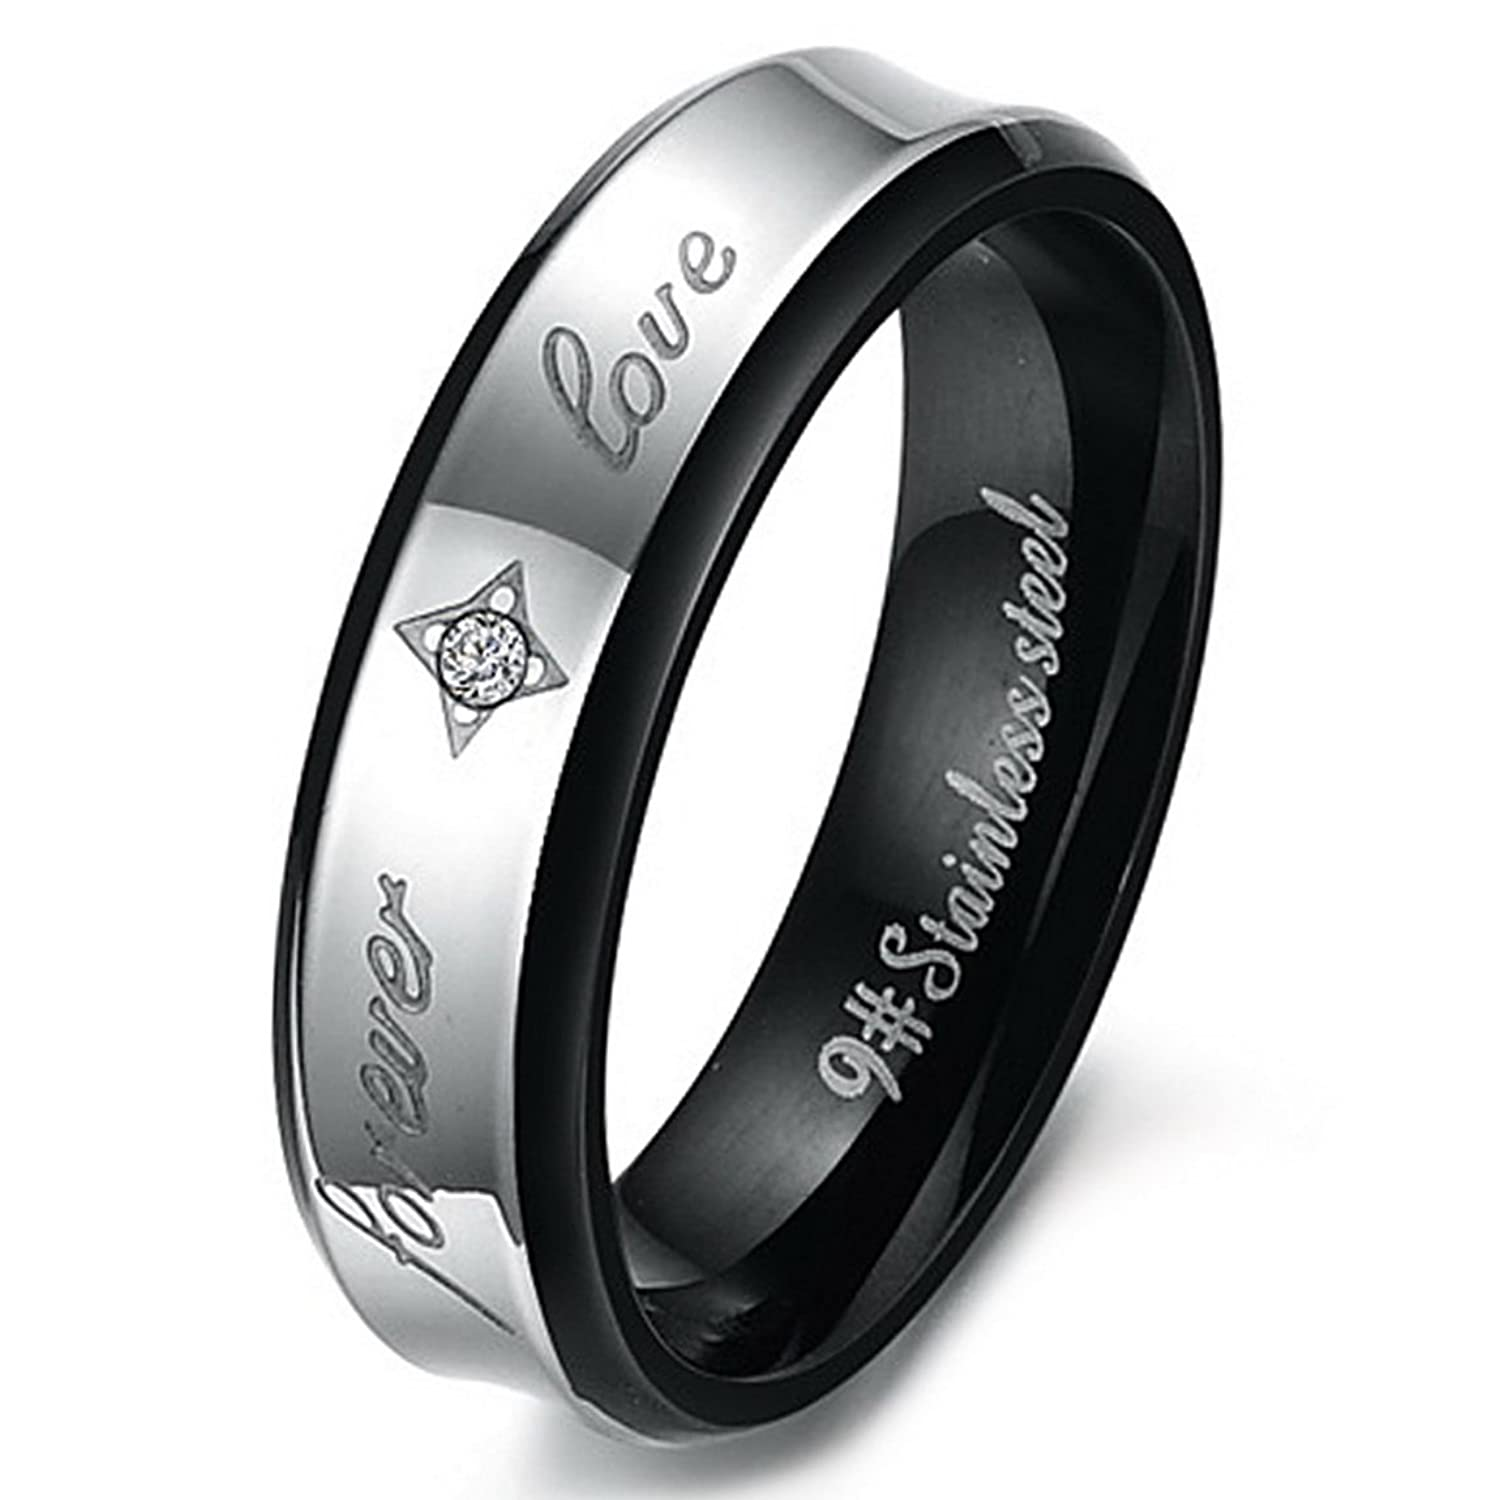 Amazon.com: INBLUE Men's Wide 6mm Stainless Steel Ring Band CZ ...